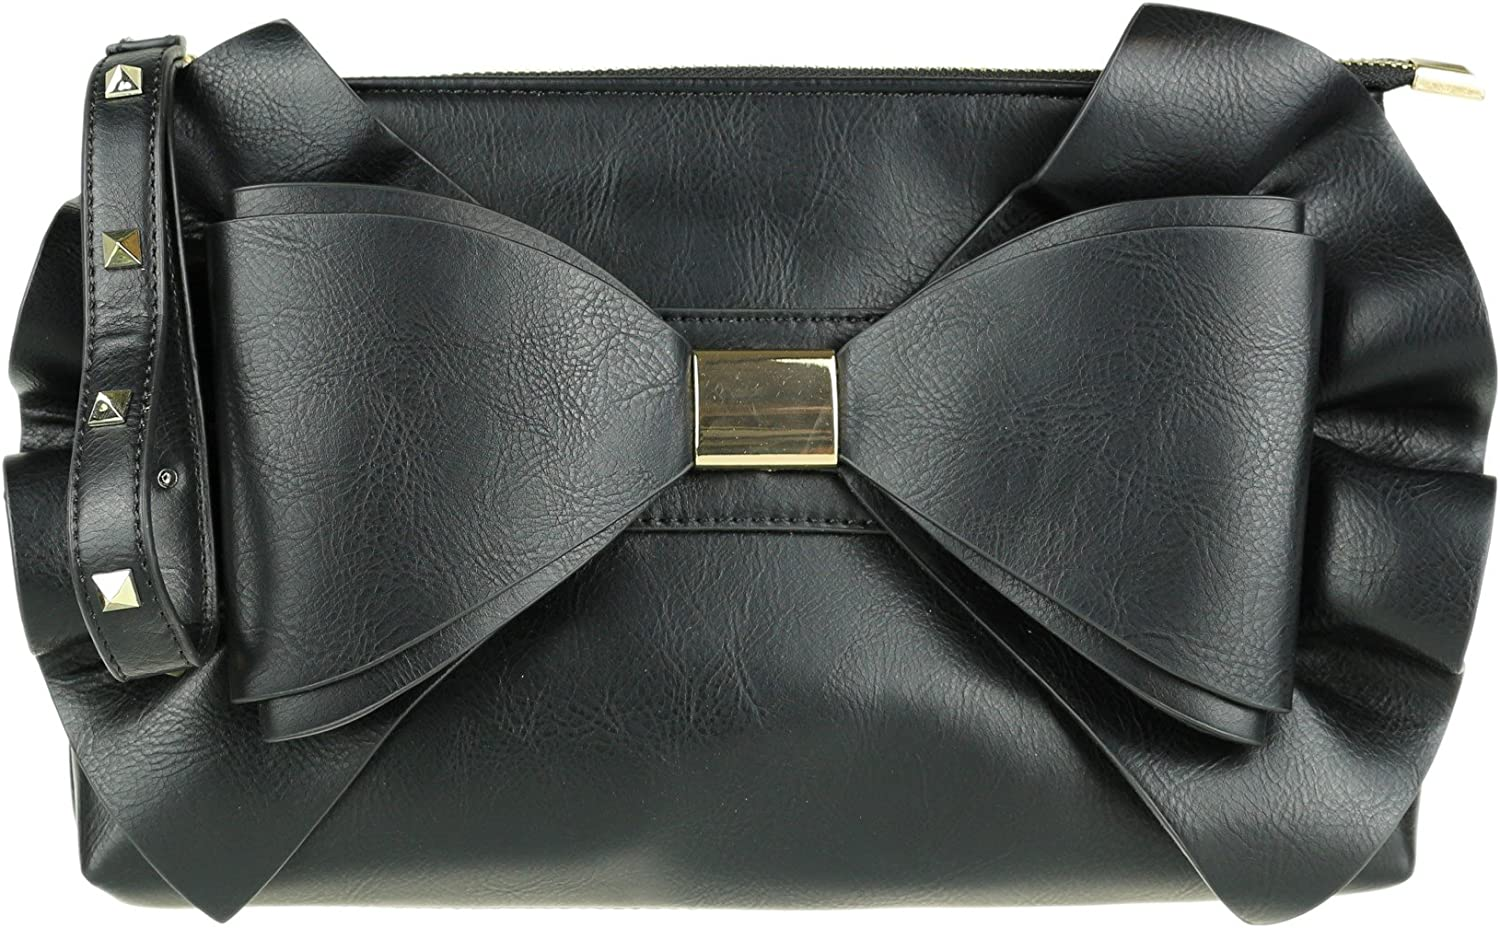 Girly HandBags Big Bow Clutch Bag Black: Amazon.co.uk